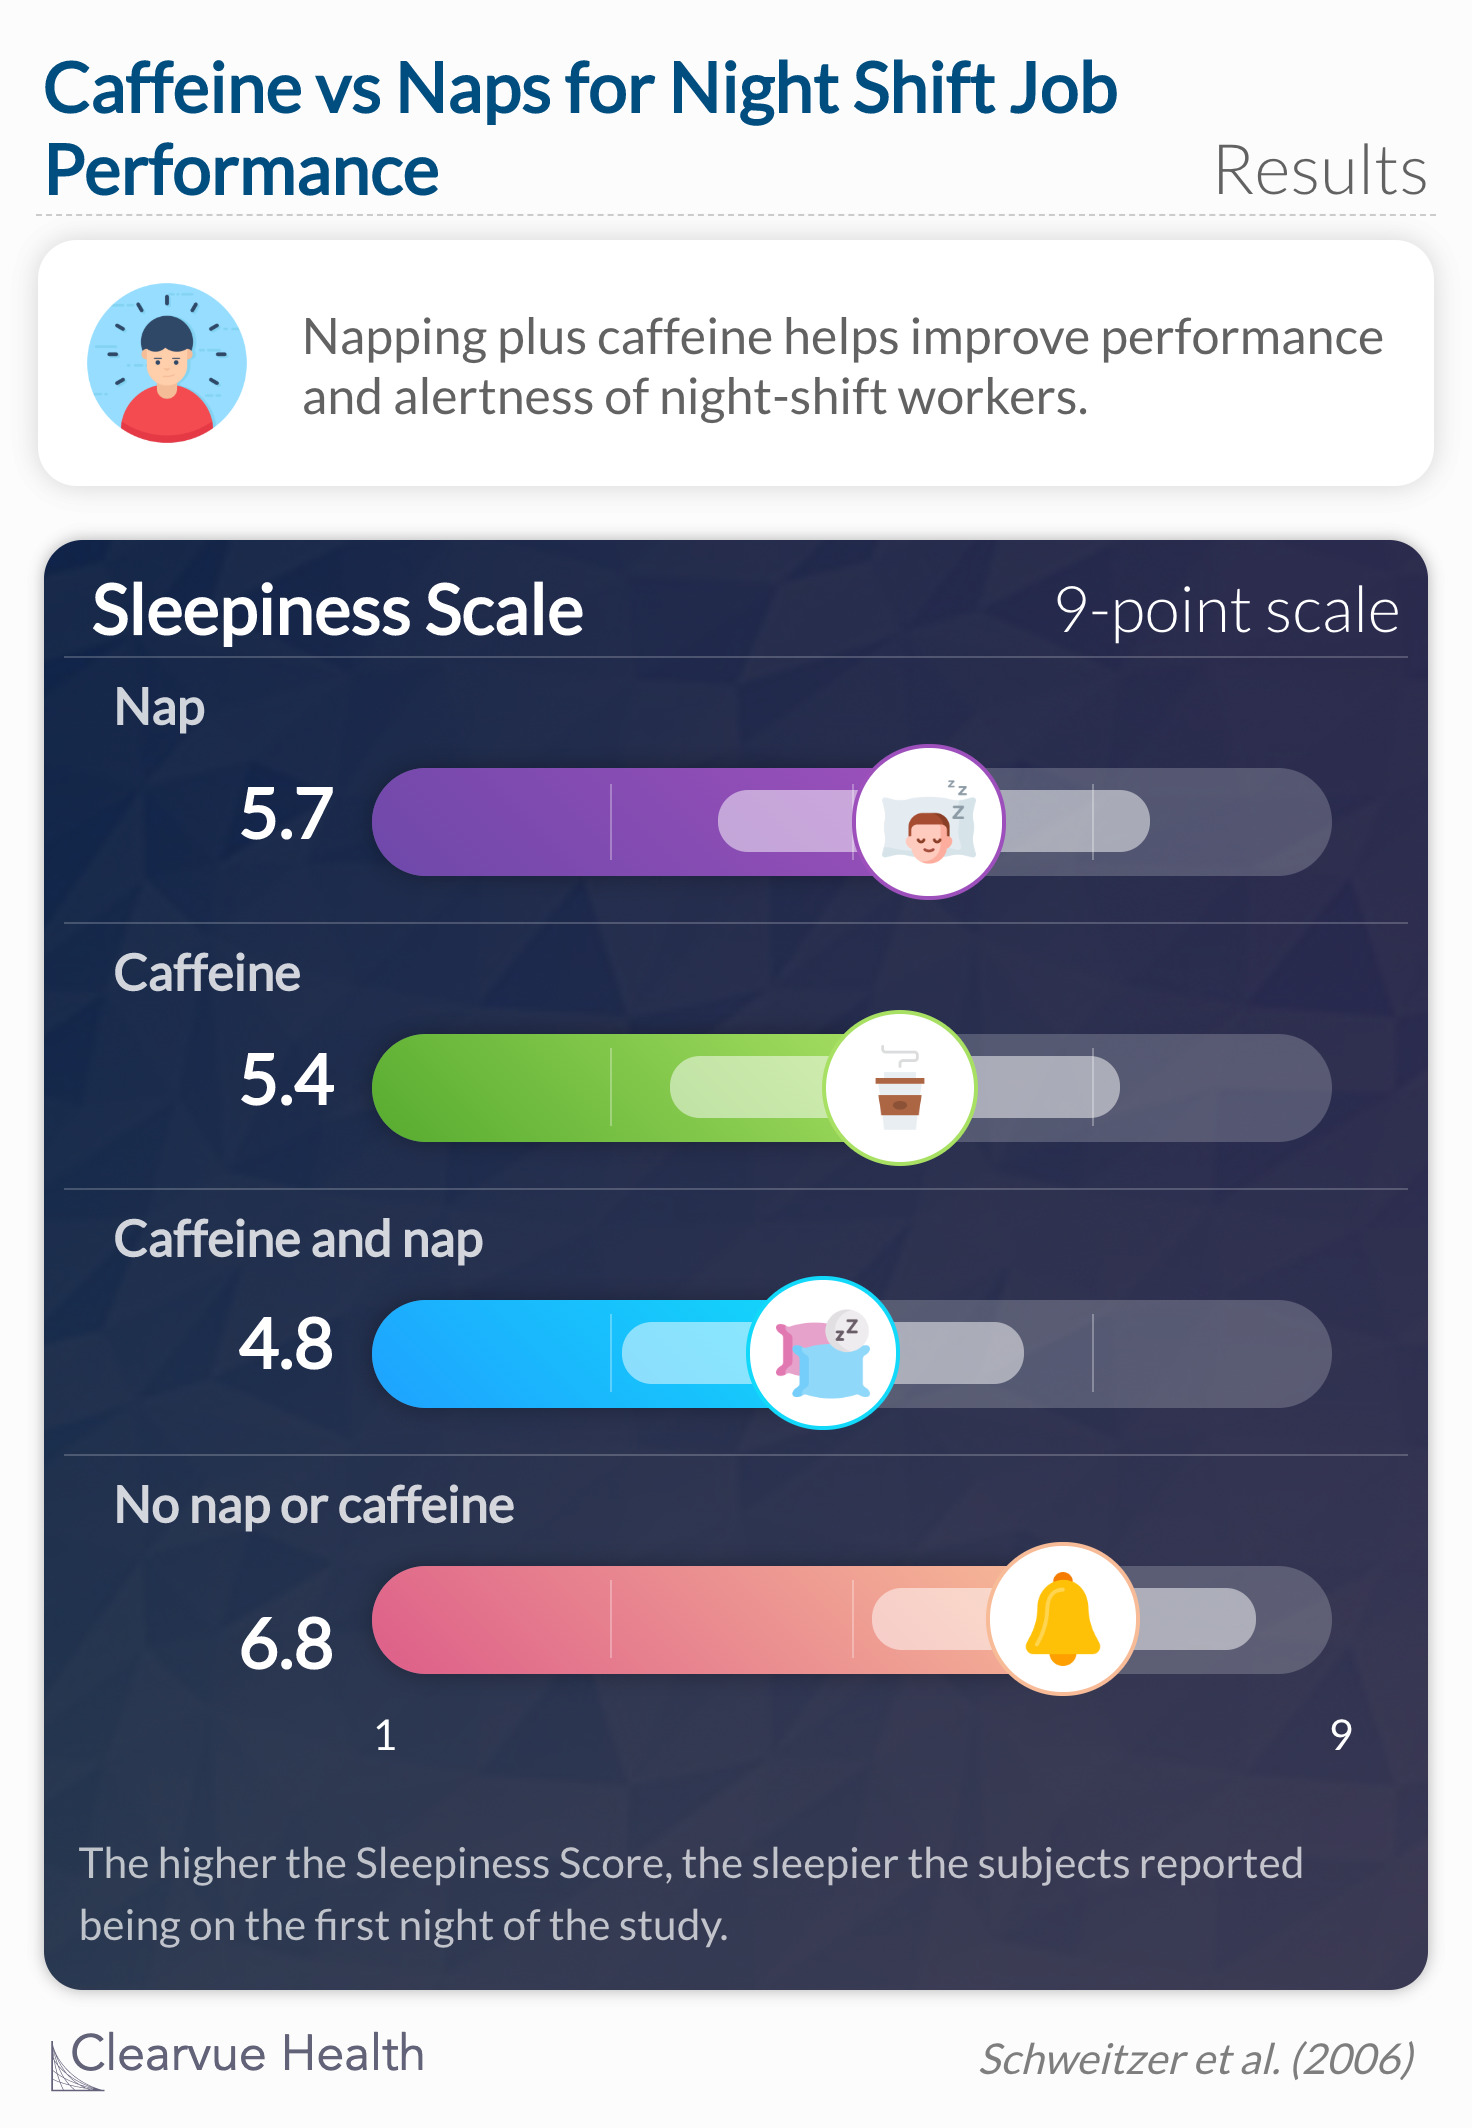 Napping plus caffeine helps improve performance and alertness of night-shift workers